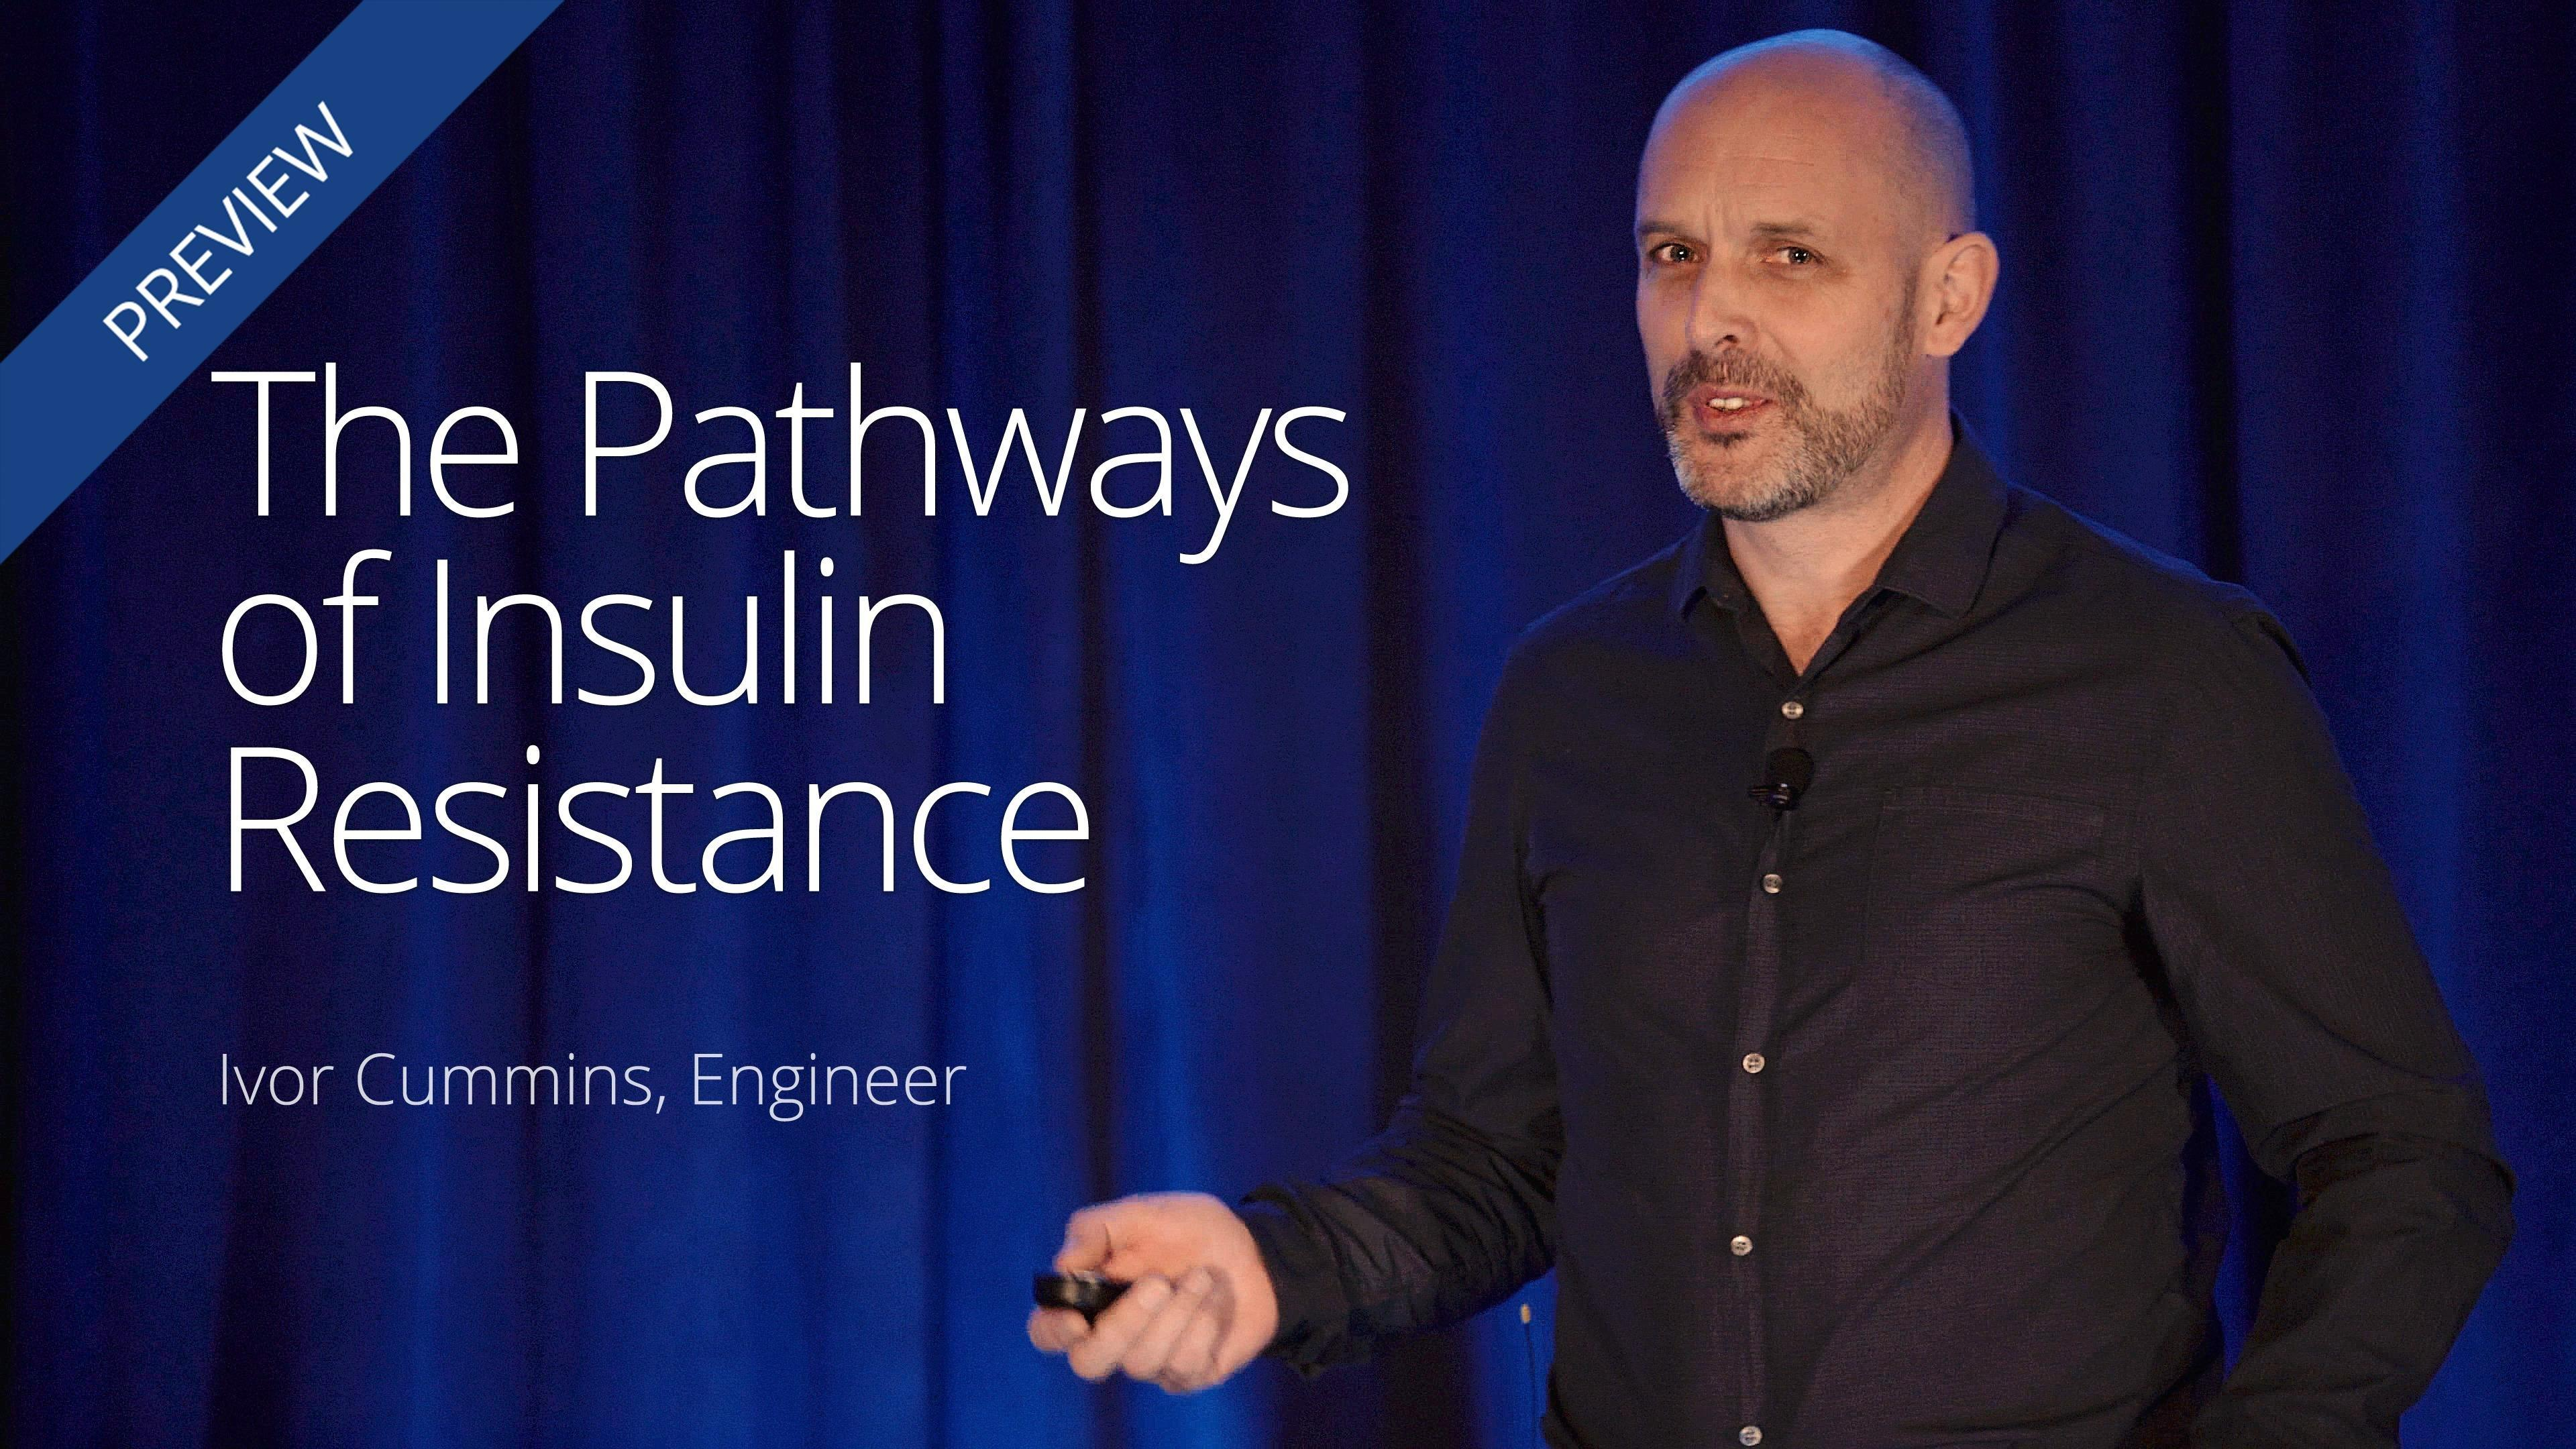 The Pathways Of Insulin Resistance